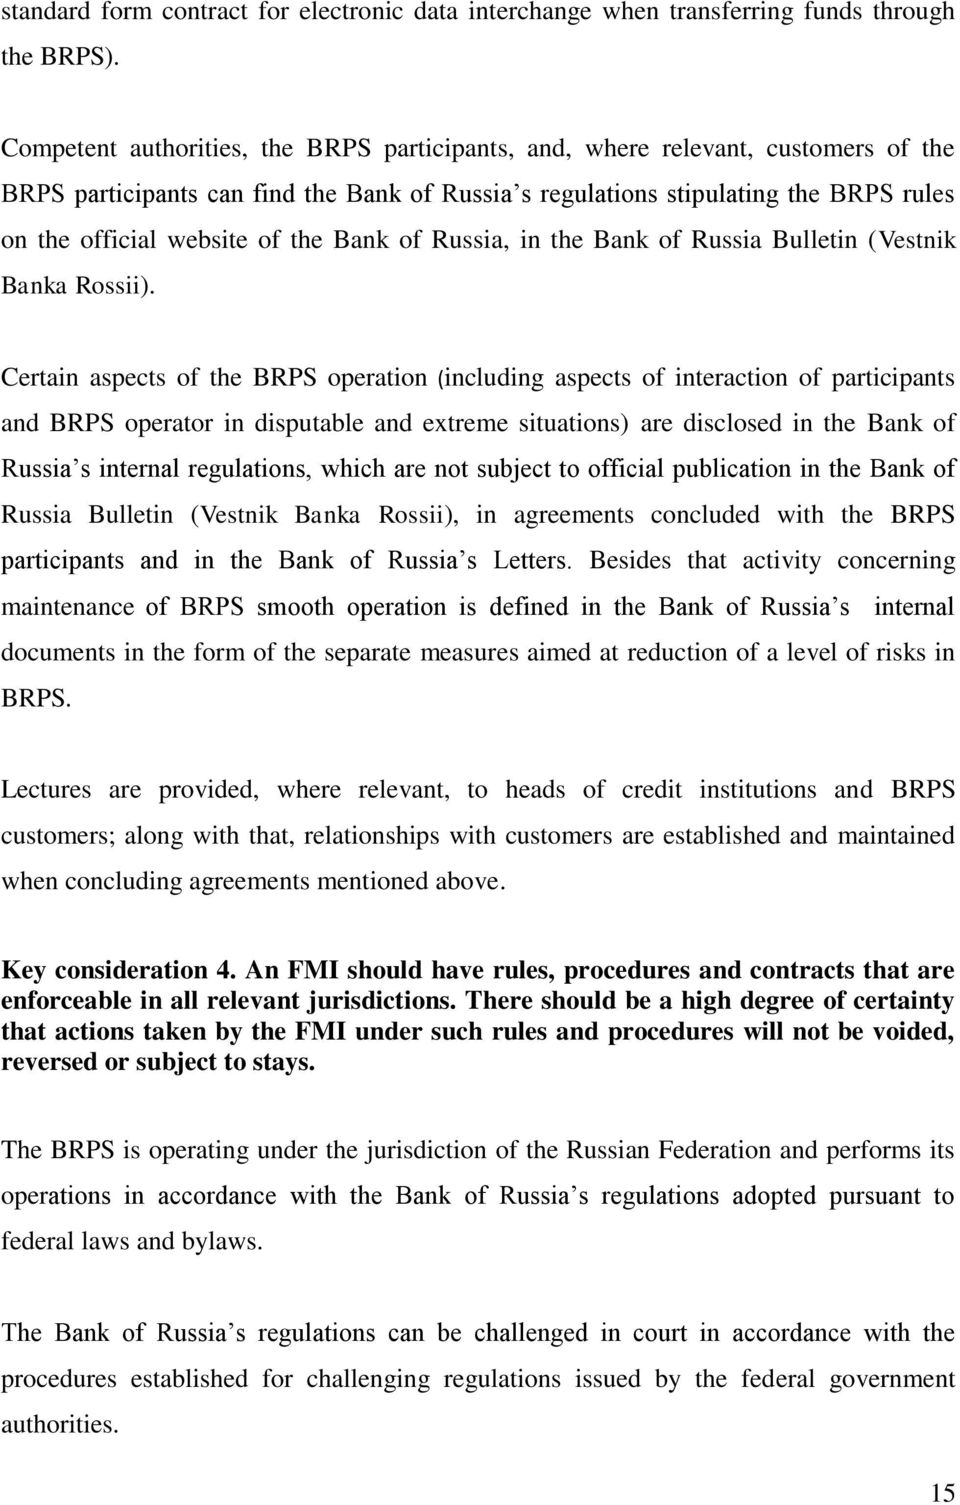 the Bank of Russia, in the Bank of Russia Bulletin (Vestnik Banka Rossii).